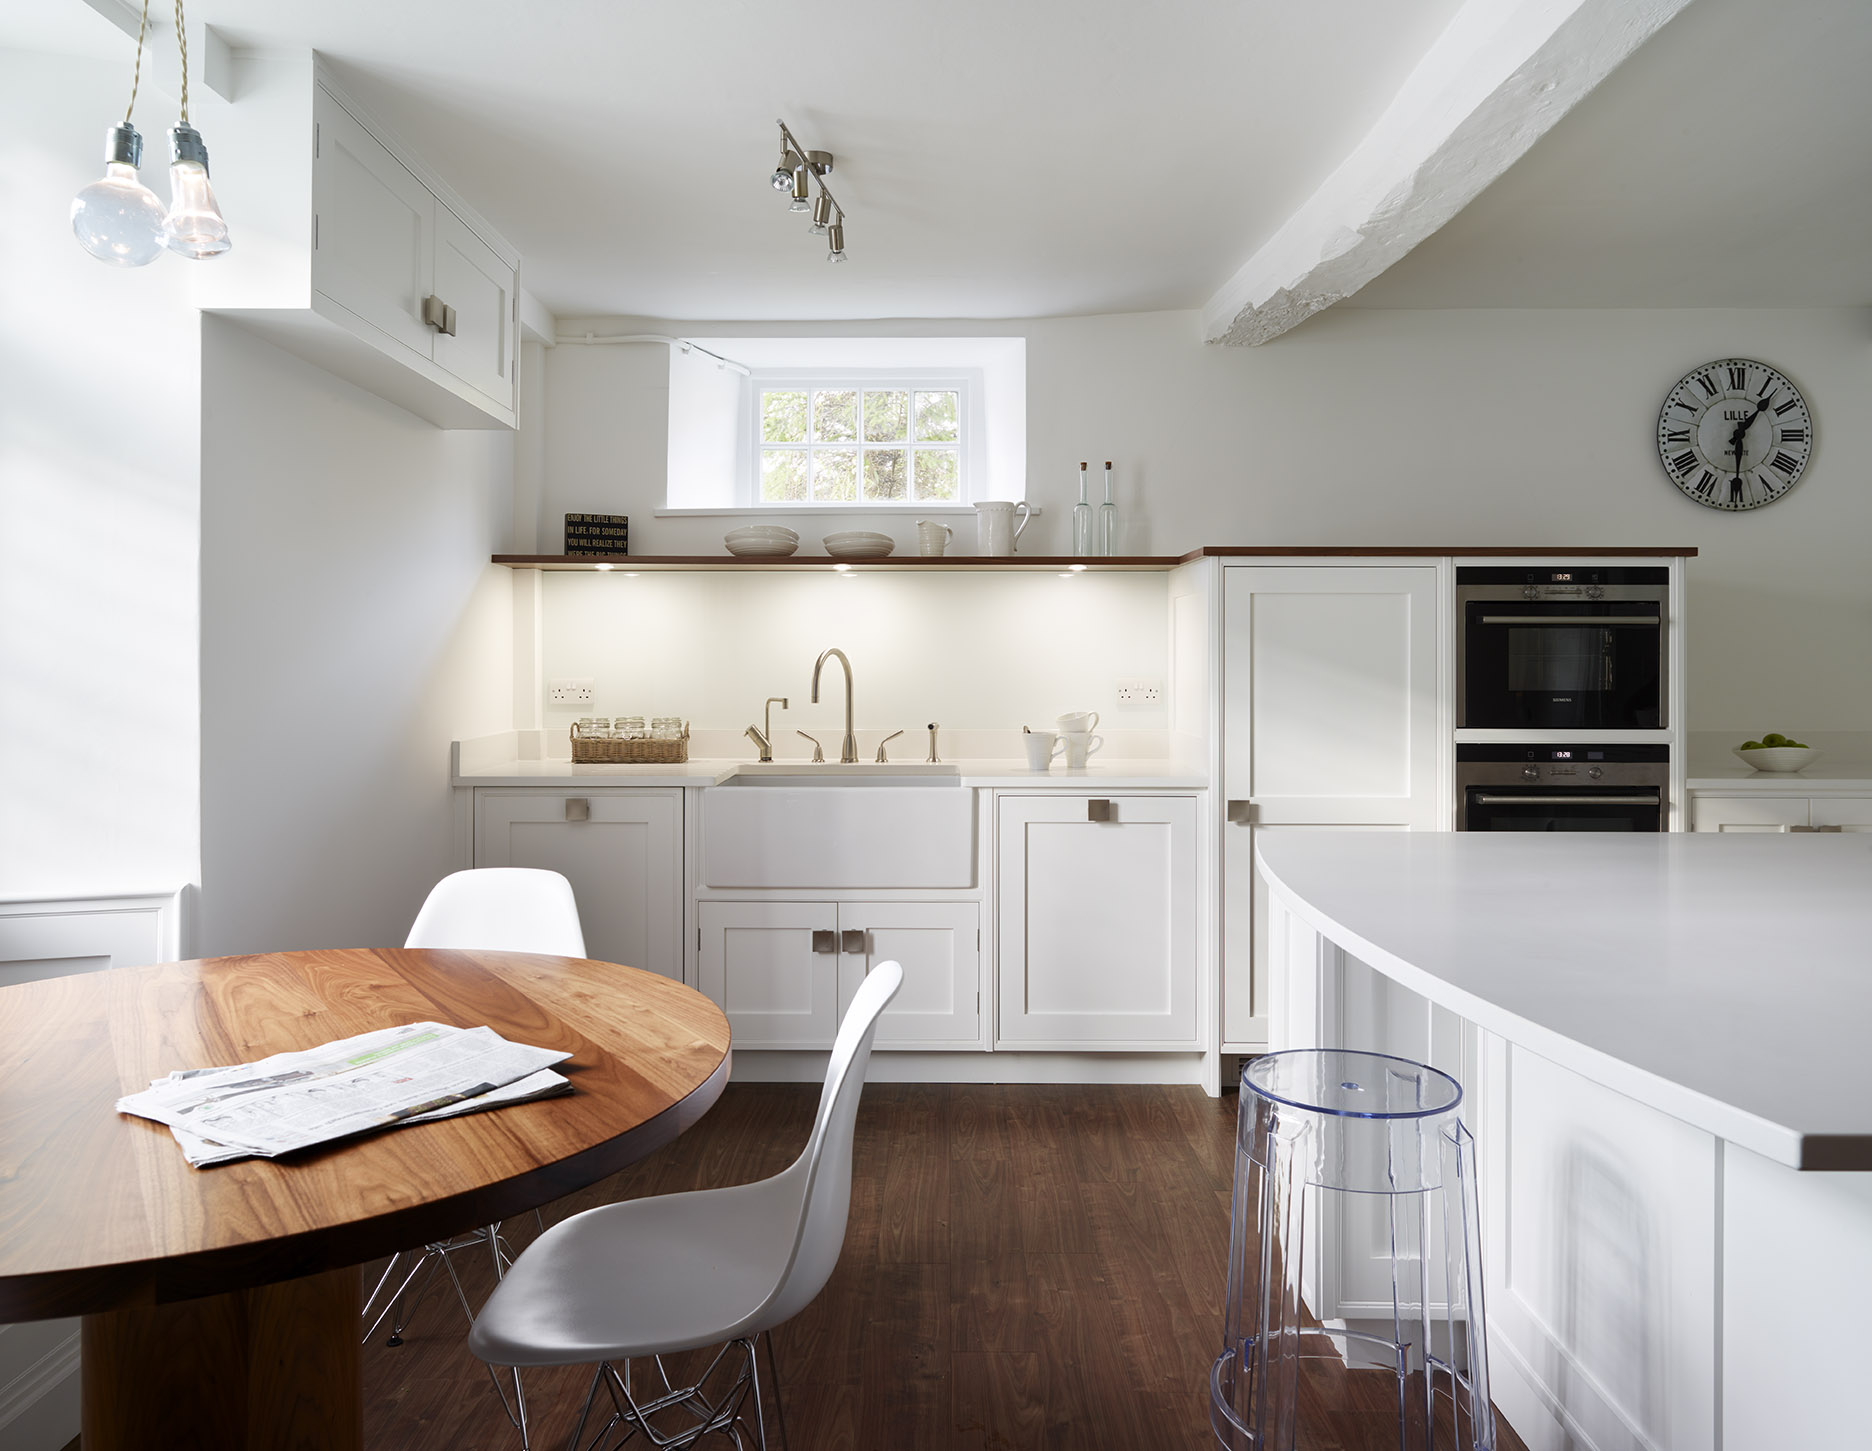 Stoke Goldington - Classic shaker style kitchen with modern features